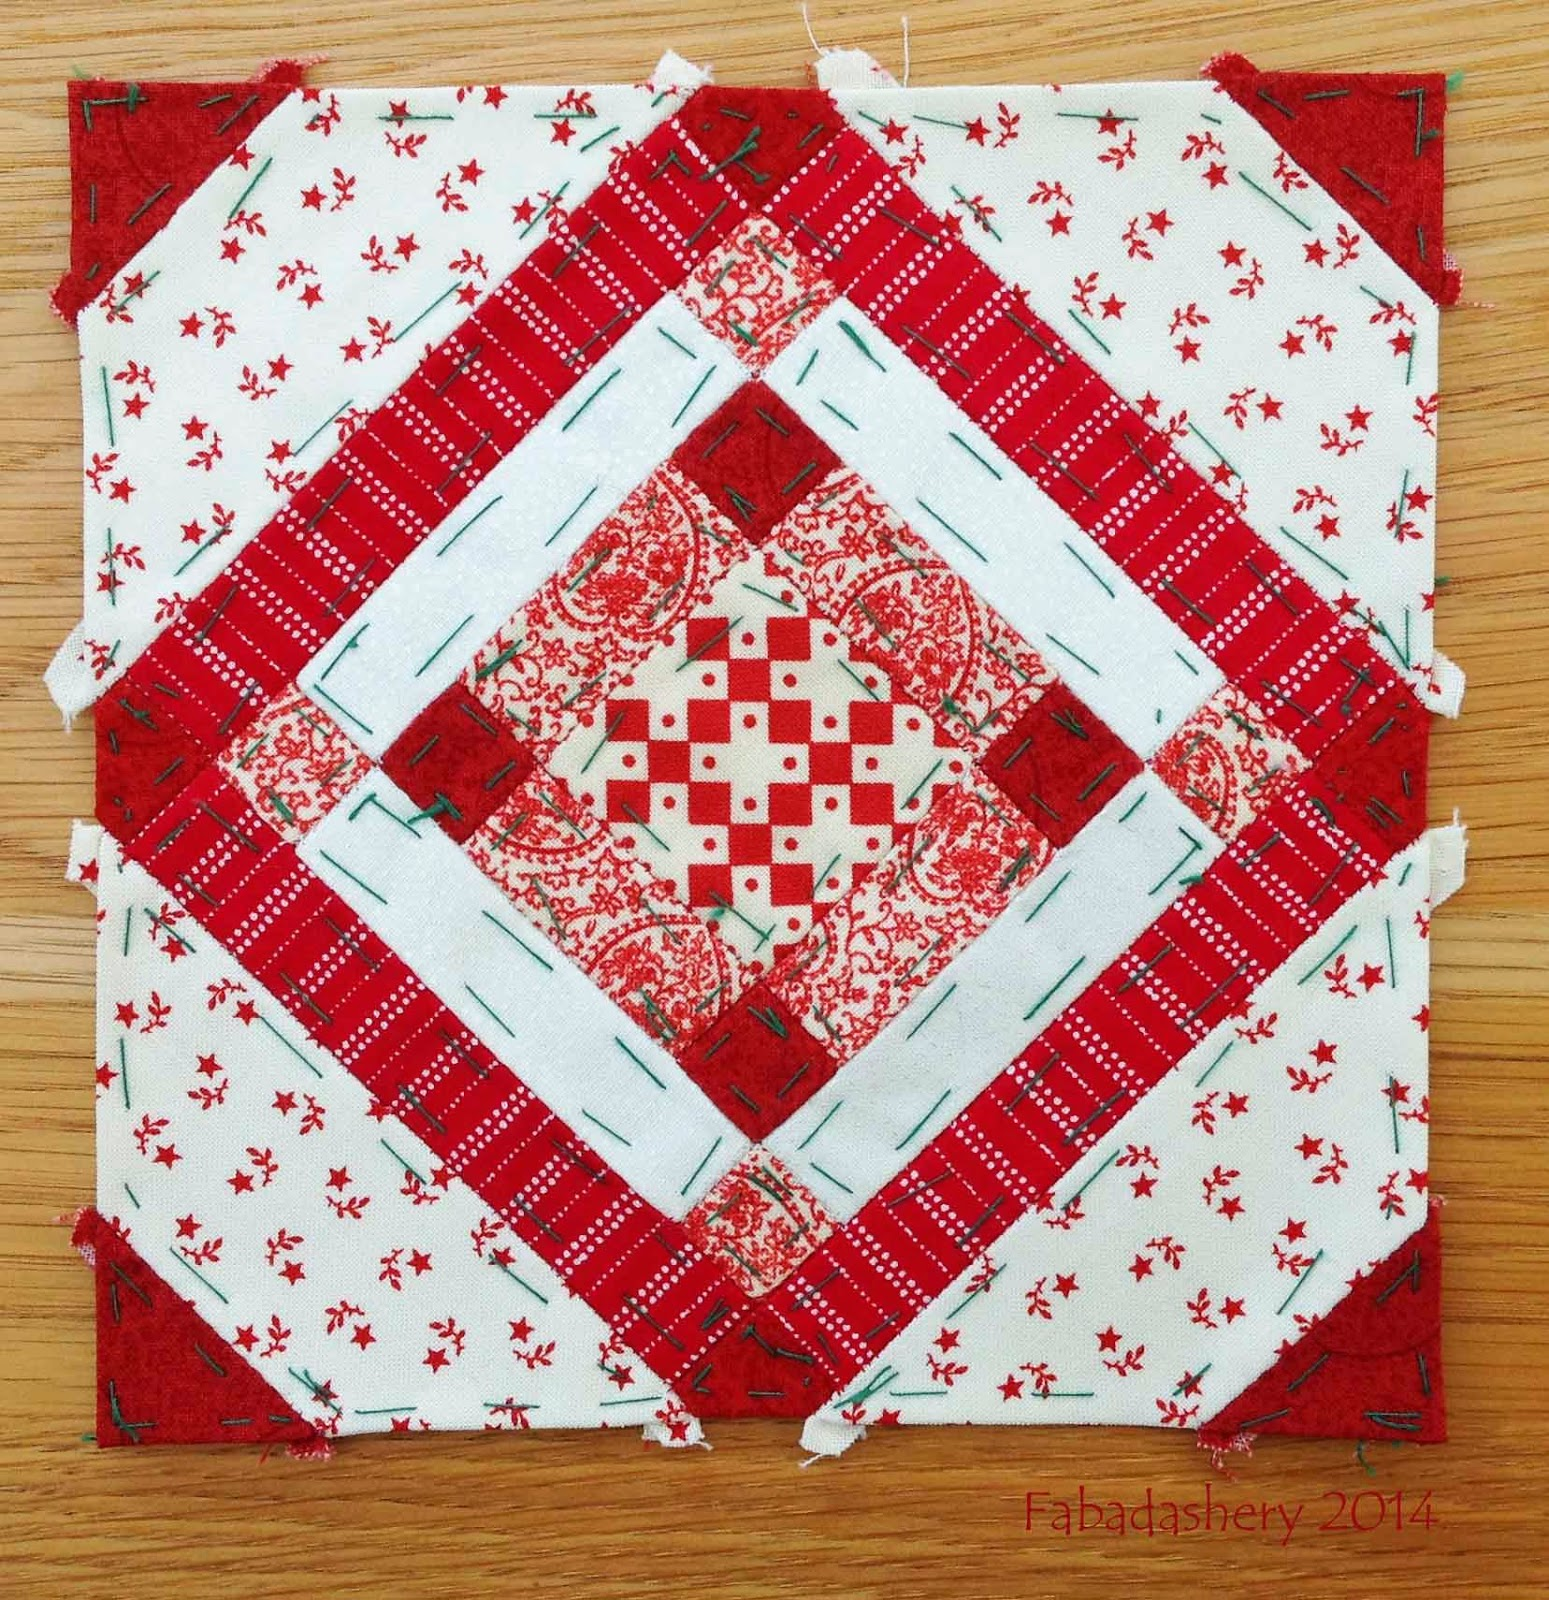 Block 26 - Nearly Insane Quilt